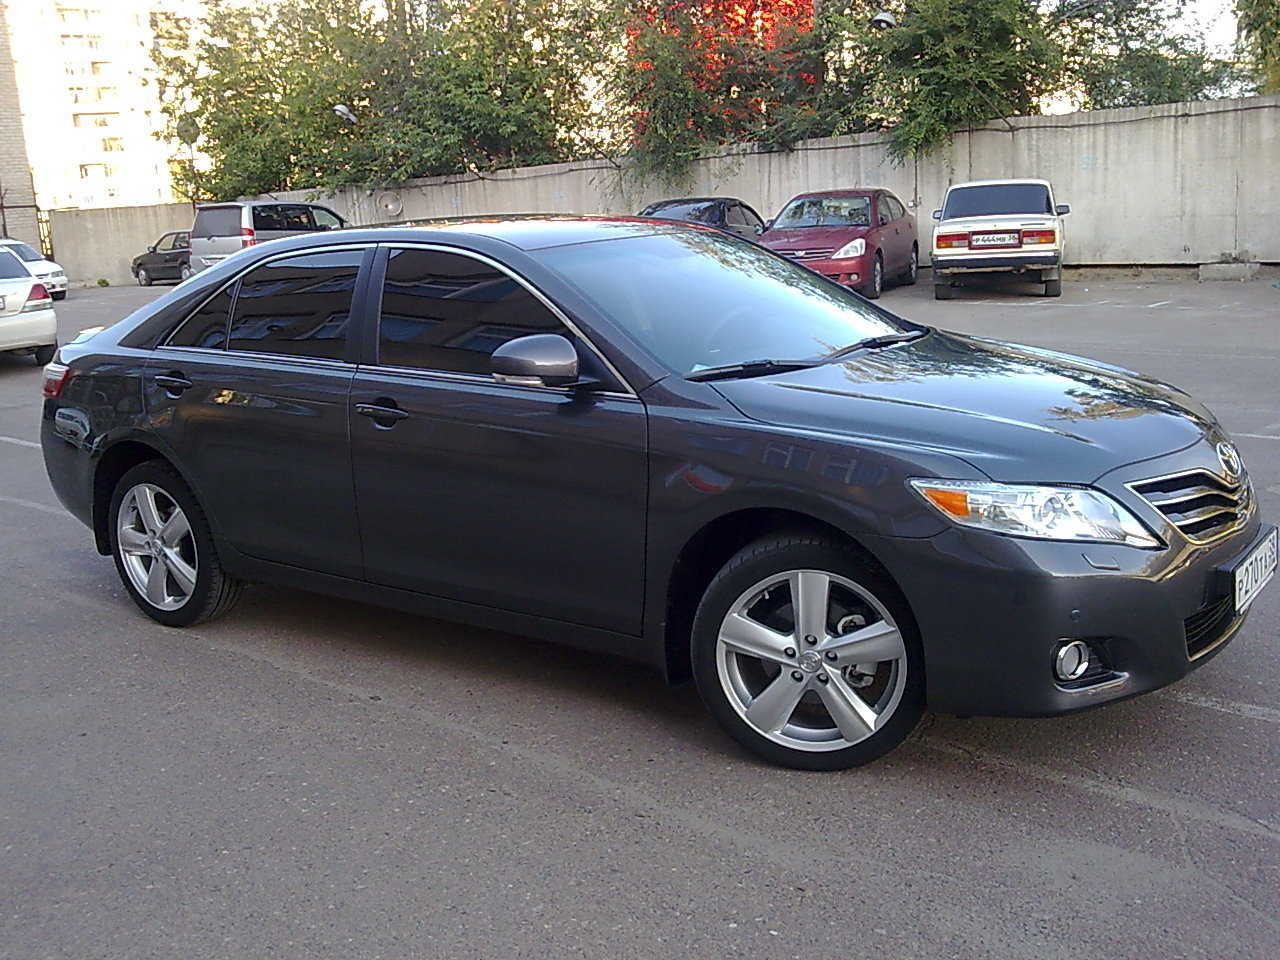 2009 toyota camry photos 2 4 gasoline ff automatic for. Black Bedroom Furniture Sets. Home Design Ideas